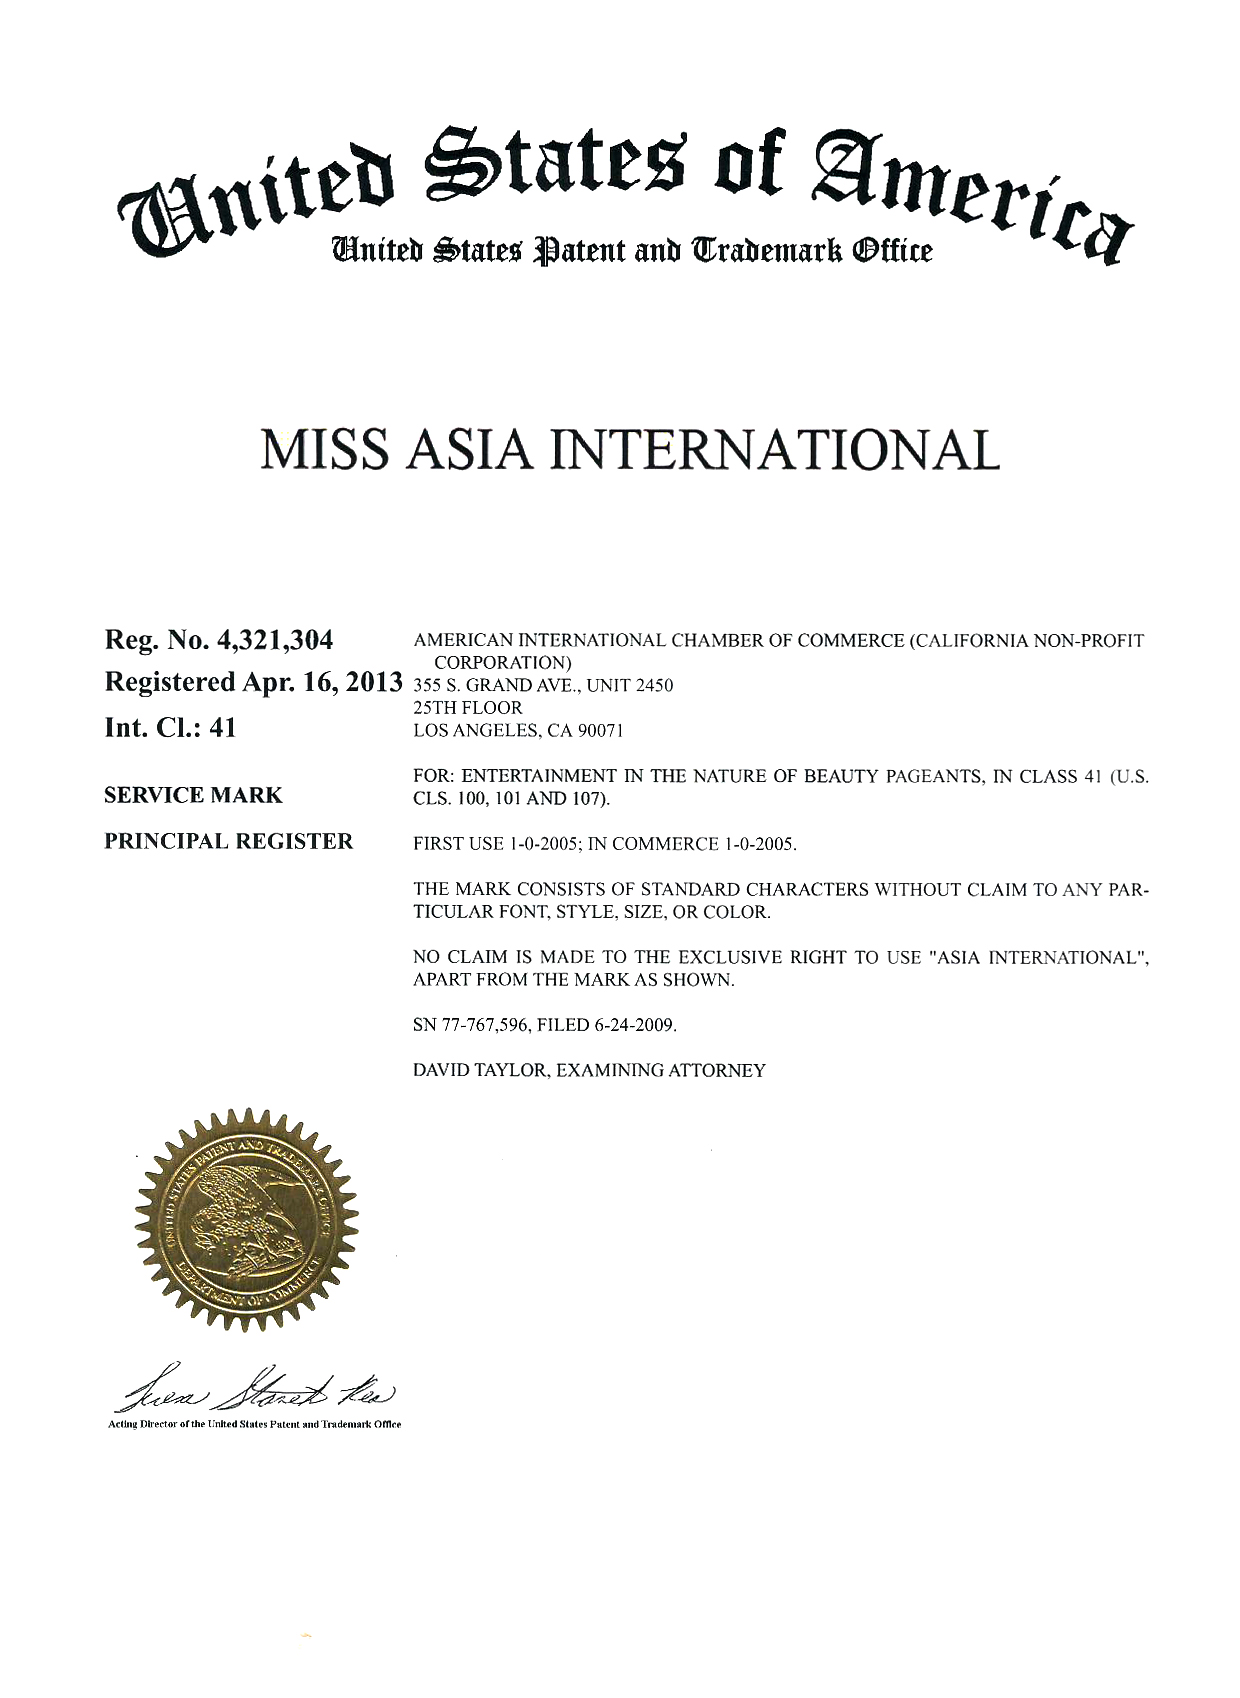 trademark-of-miss-asia